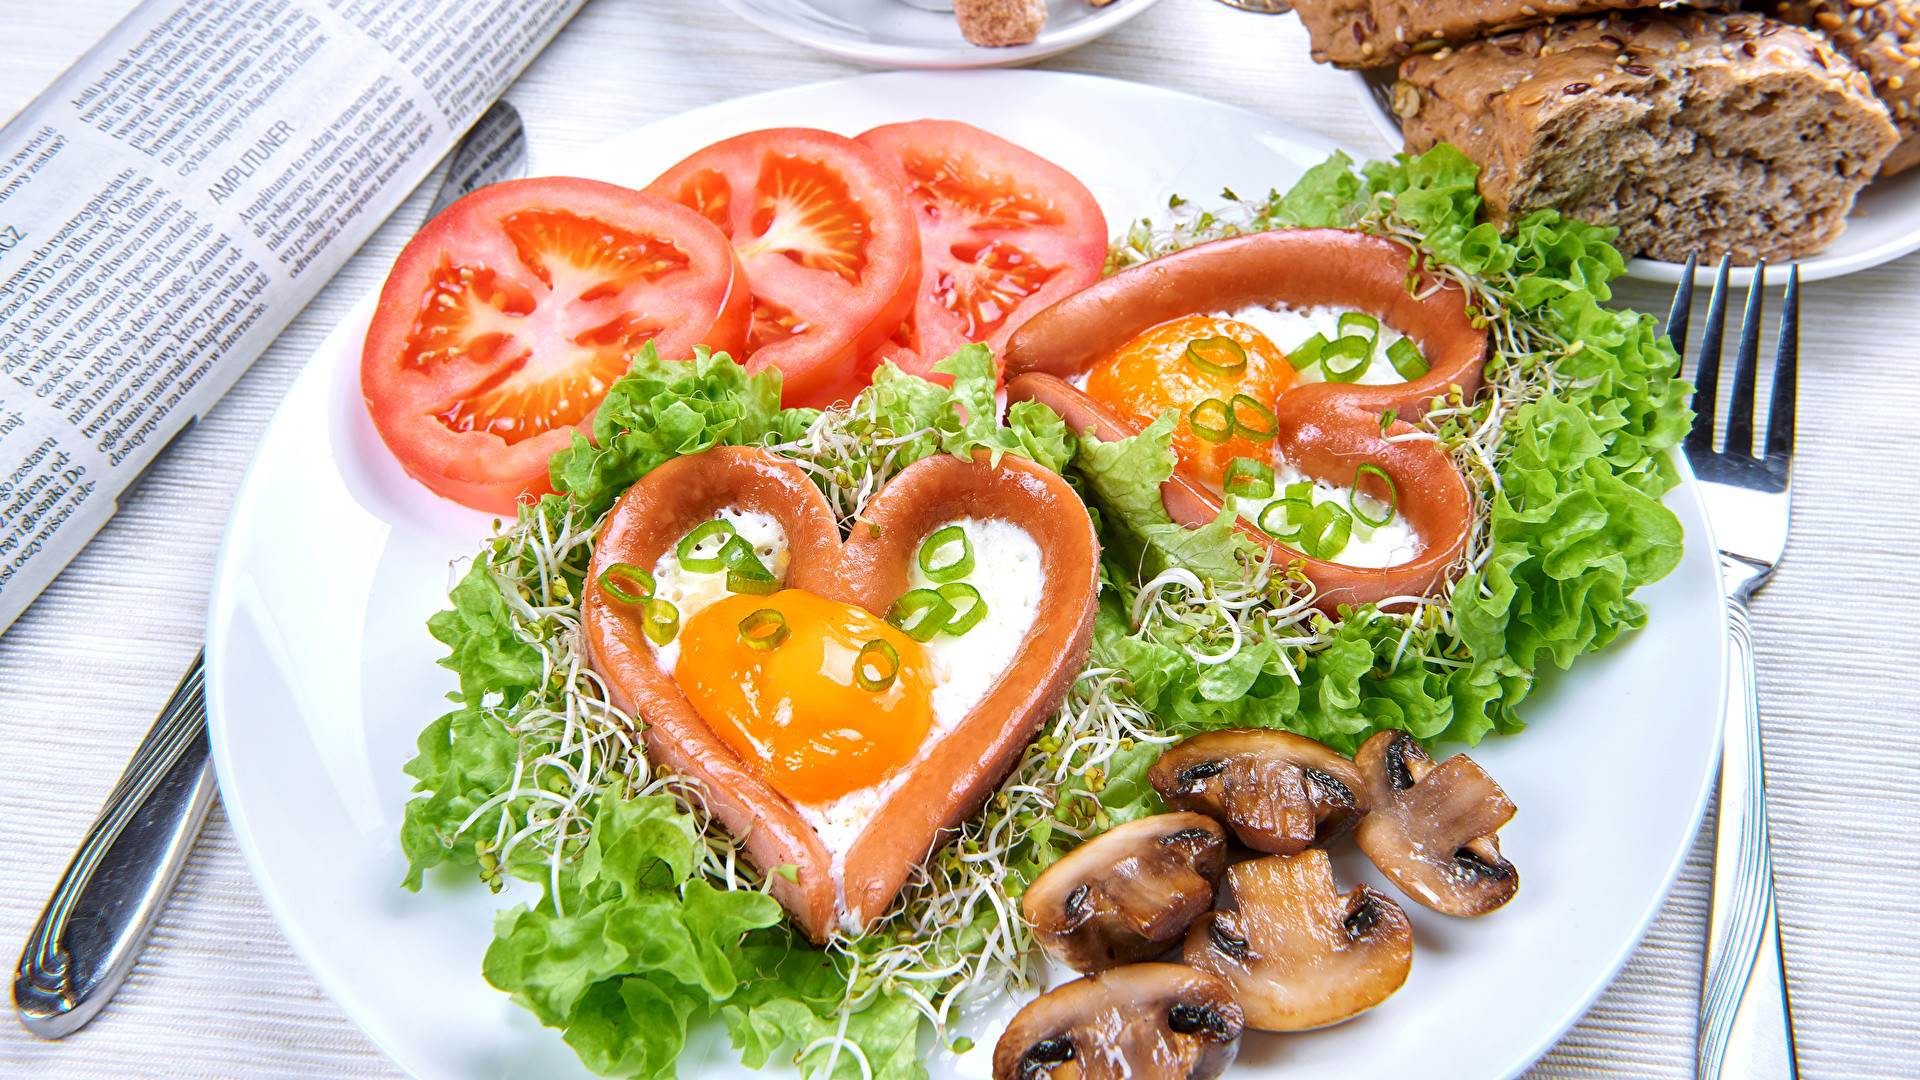 Ve ables Tomatoes Mushrooms Plate Heart Fried